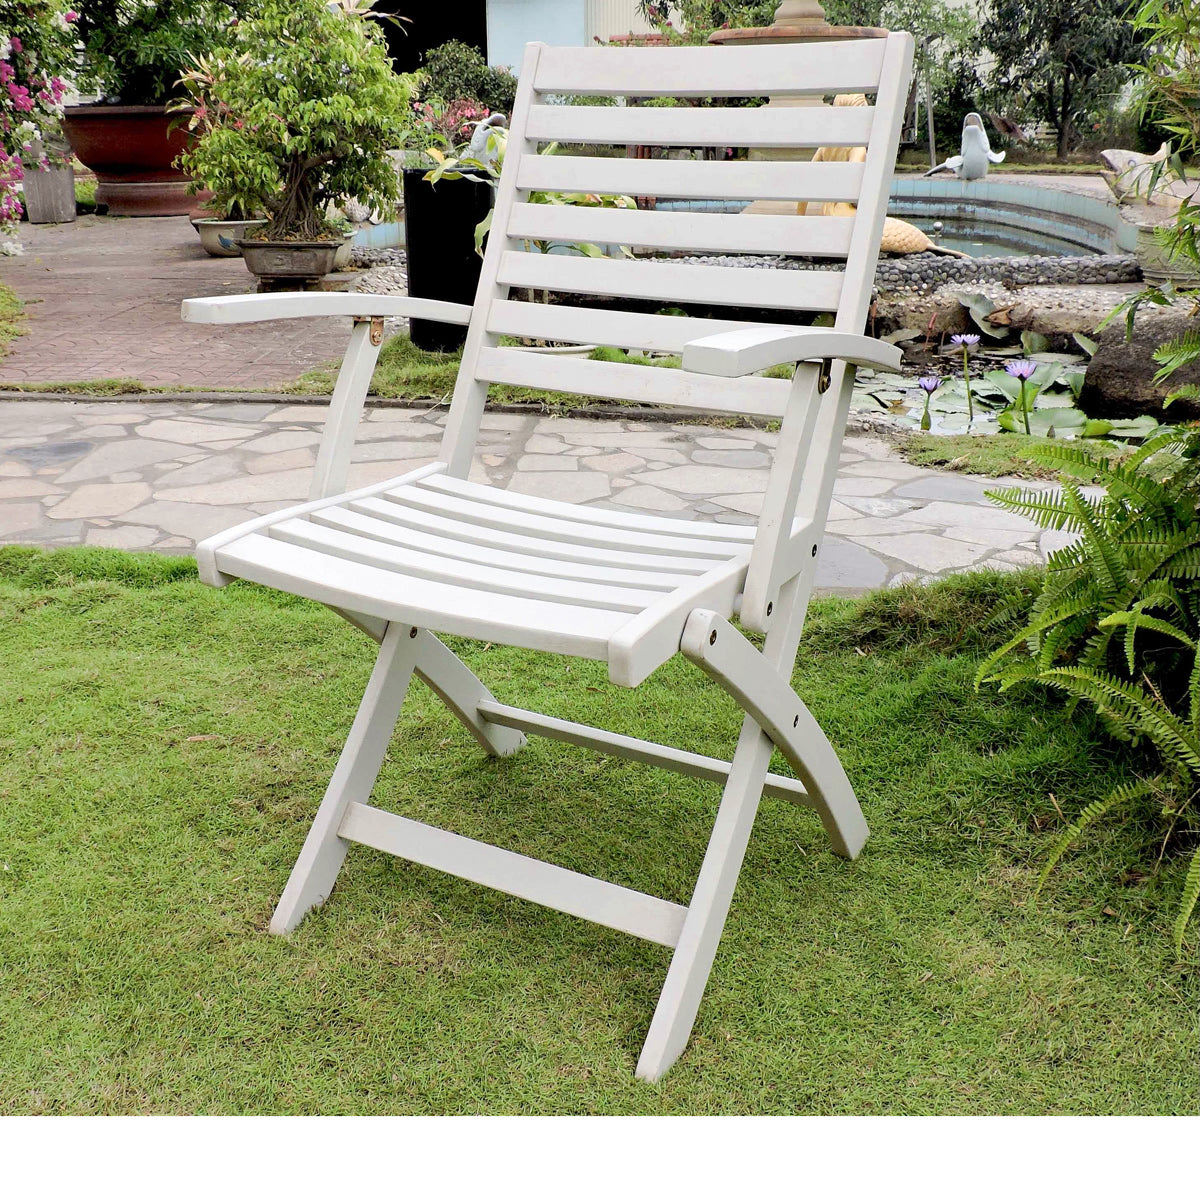 Superb Folding S 2 Ladder Back Armchair With Antique White Finish By International Caravan Ncnpc Chair Design For Home Ncnpcorg